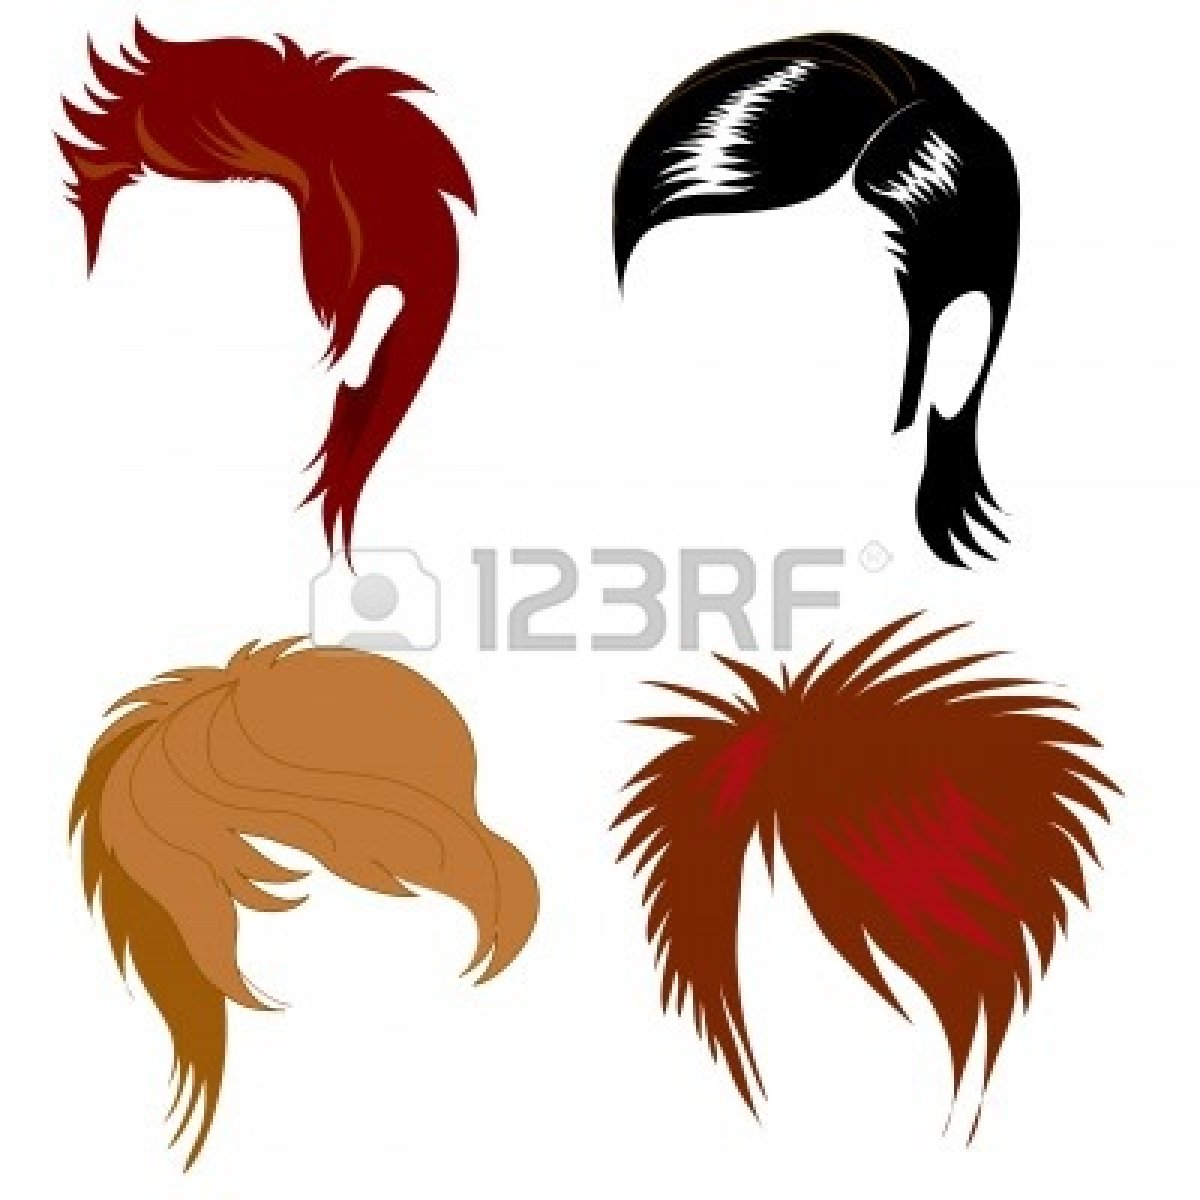 Free clipart hair styles svg transparent download Hair Cut Clipart | Free download best Hair Cut Clipart on ClipArtMag.com svg transparent download